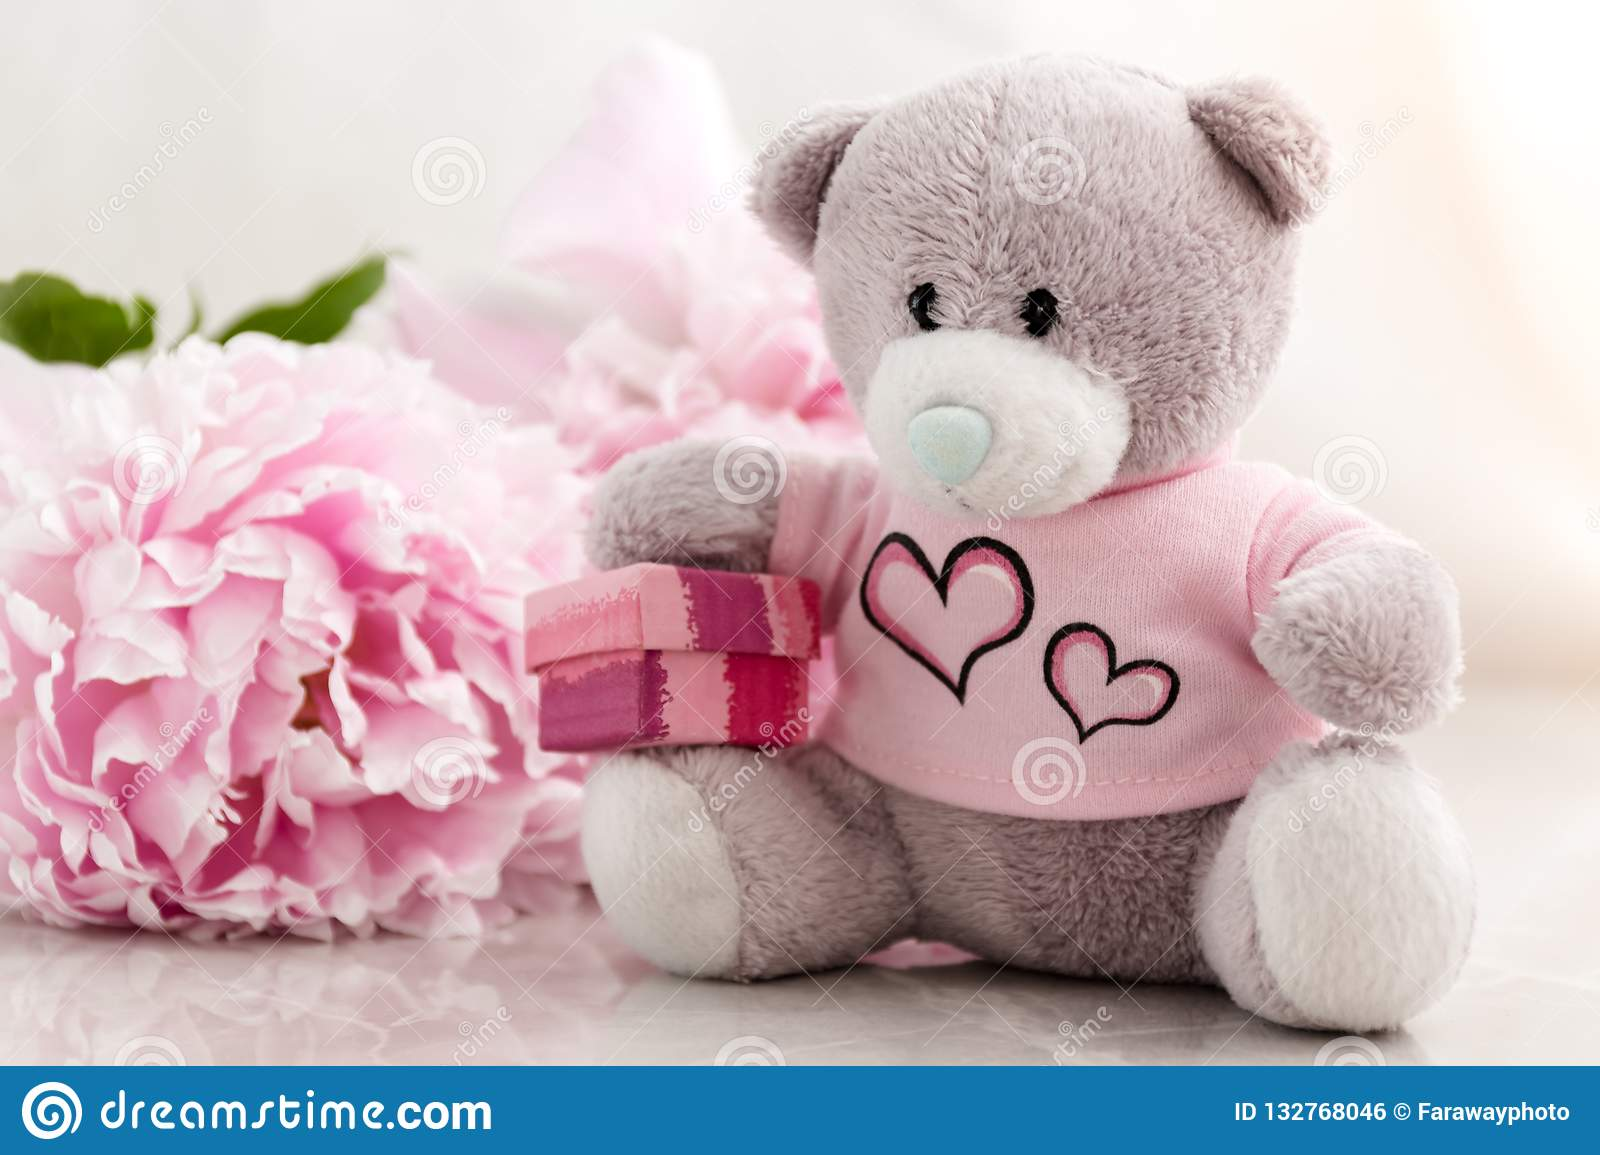 Little Teddy Bear Is Sitting With A Gift Box Stock Photo Image Of Focus Idea 132768046